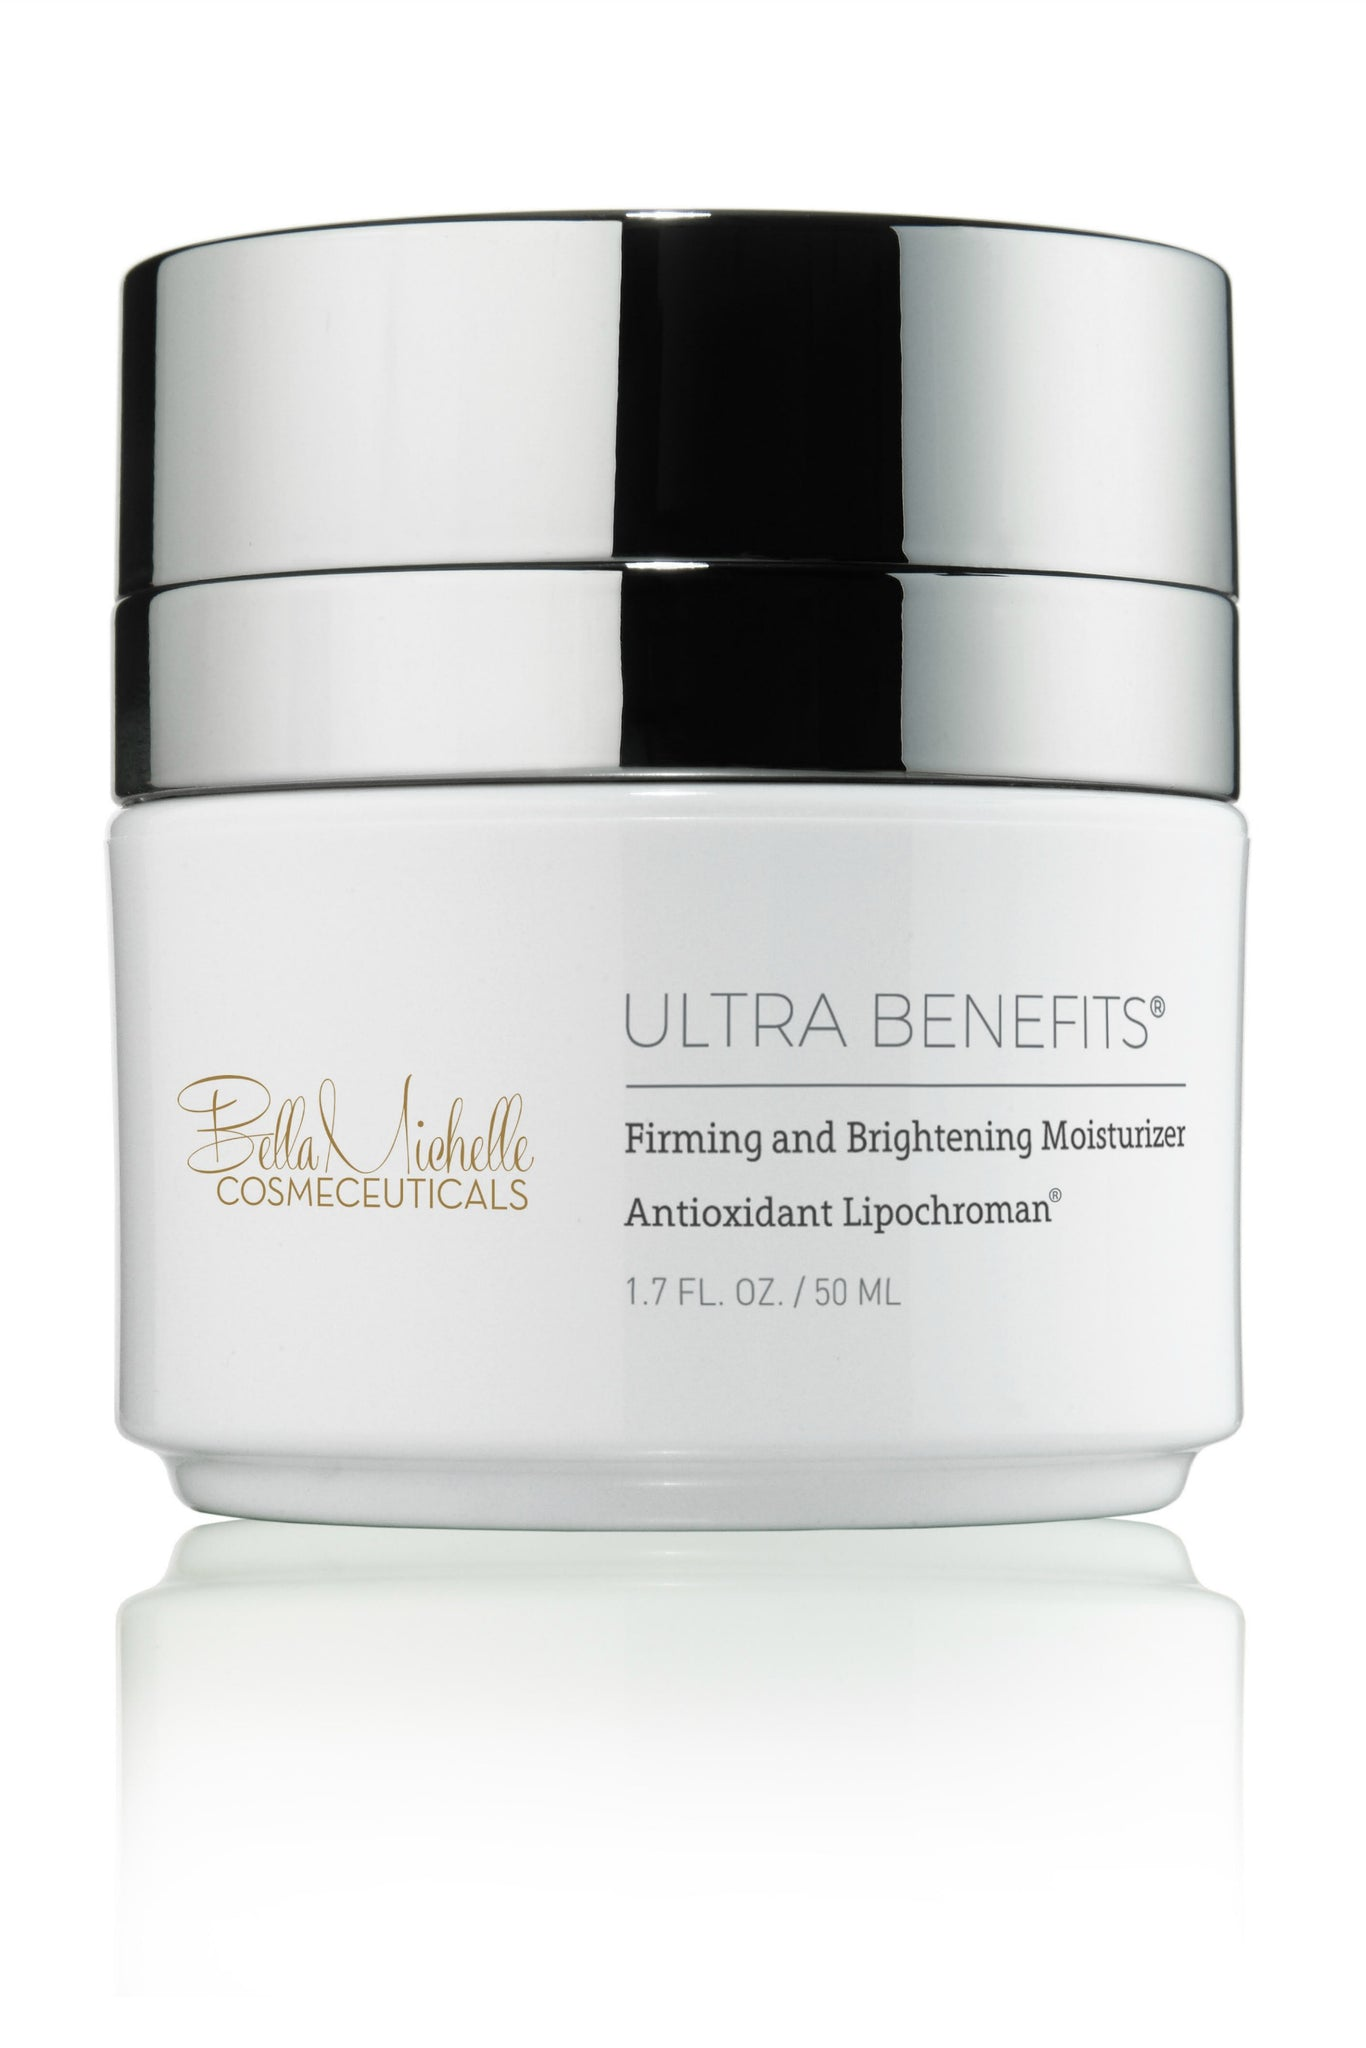 ultra benefits firming and brightening